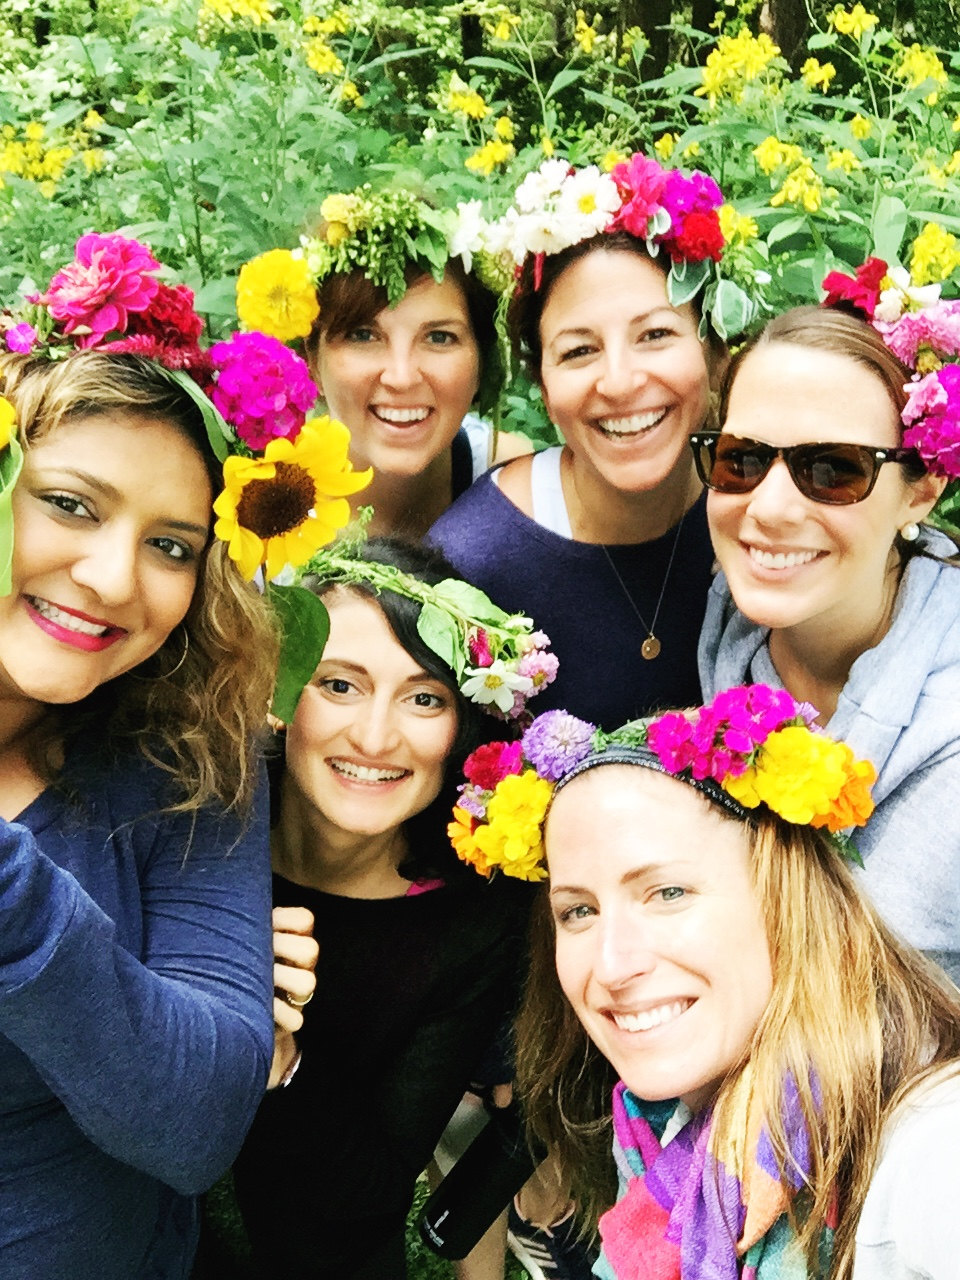 And last but certainly not least, I ended the month with a wonderful morning of flower crown making, yoga, and brunch, hosted by  GroundSwell Collective ,  3 Sisters Yoga  and  Spice Acres Farms . It was such a fun way to spend the day with my girlfriends  Charity ,  Danielle ,  Reena , Laura and Sunny!